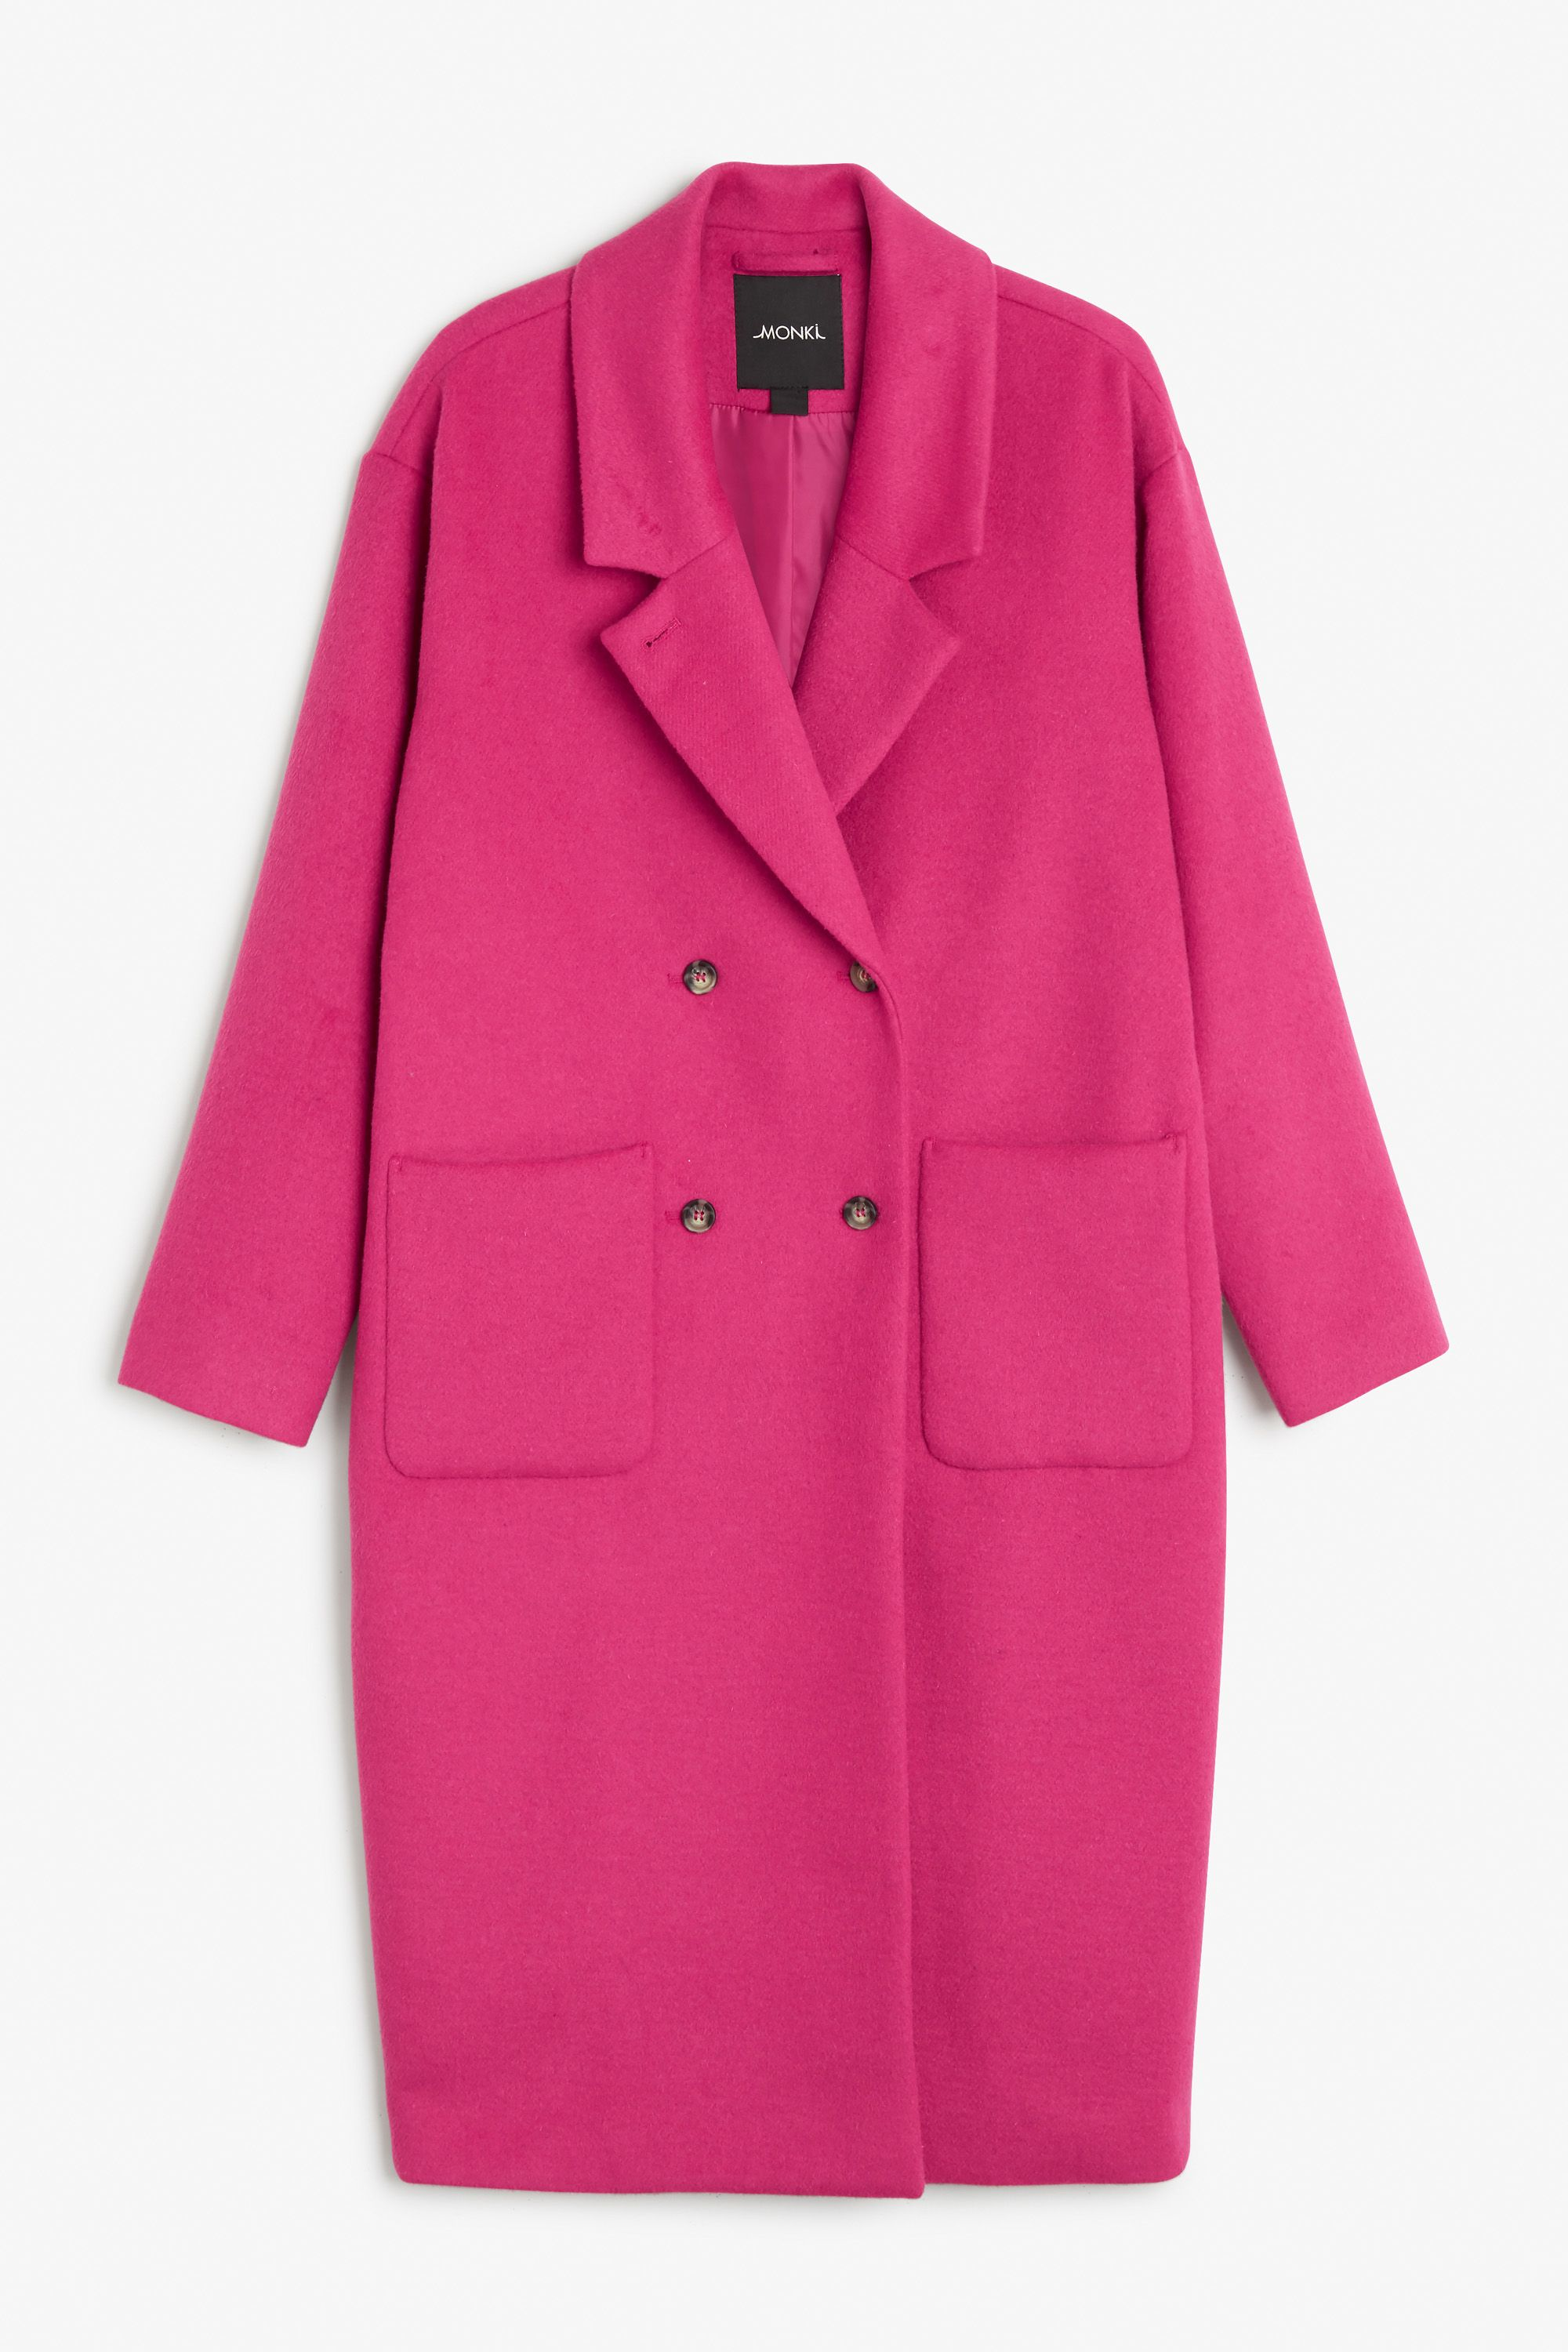 Monki Image 1 of Wool coat in Pink Dark | Clothes&Shoes ...